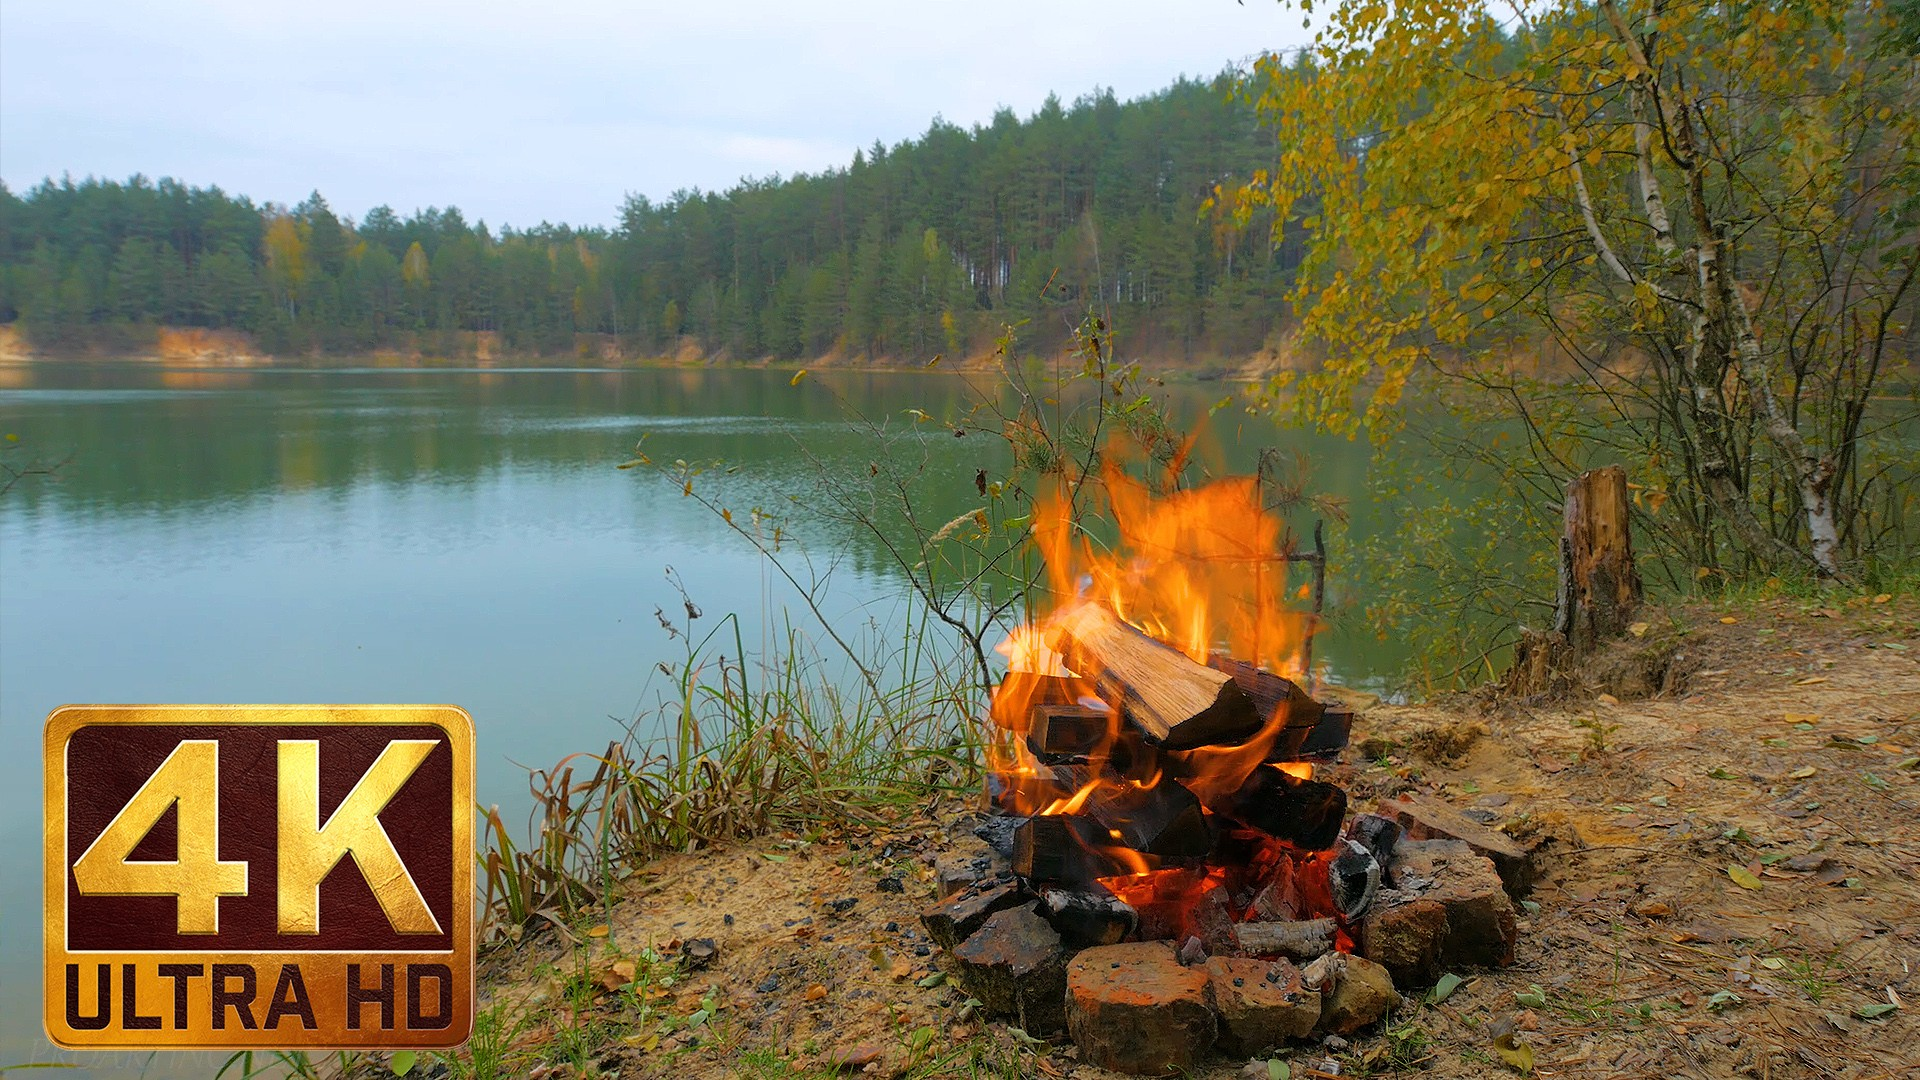 4k relaxation footage u2013 autumn flames in 4k with crackling fire